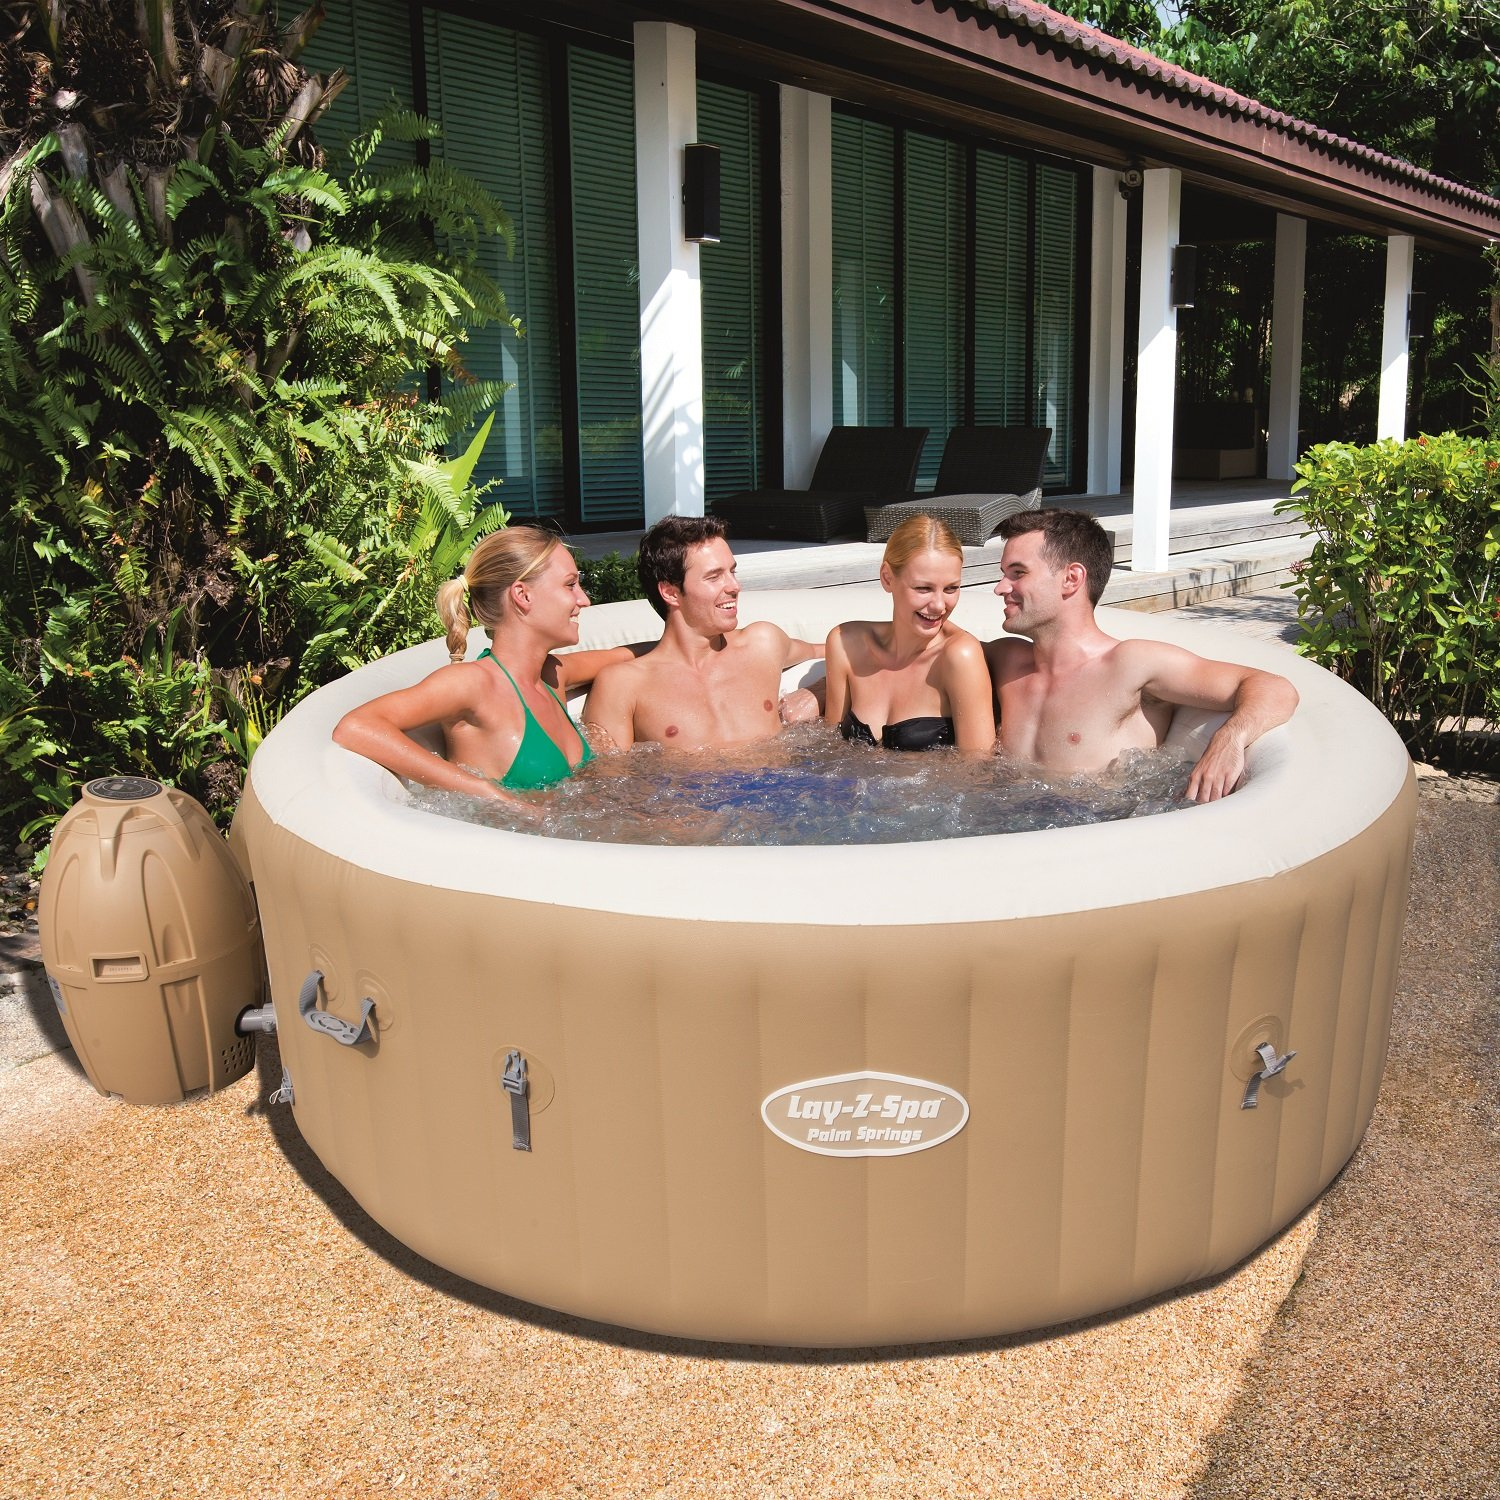 The Bestway hot tub reviews are quite favorable.